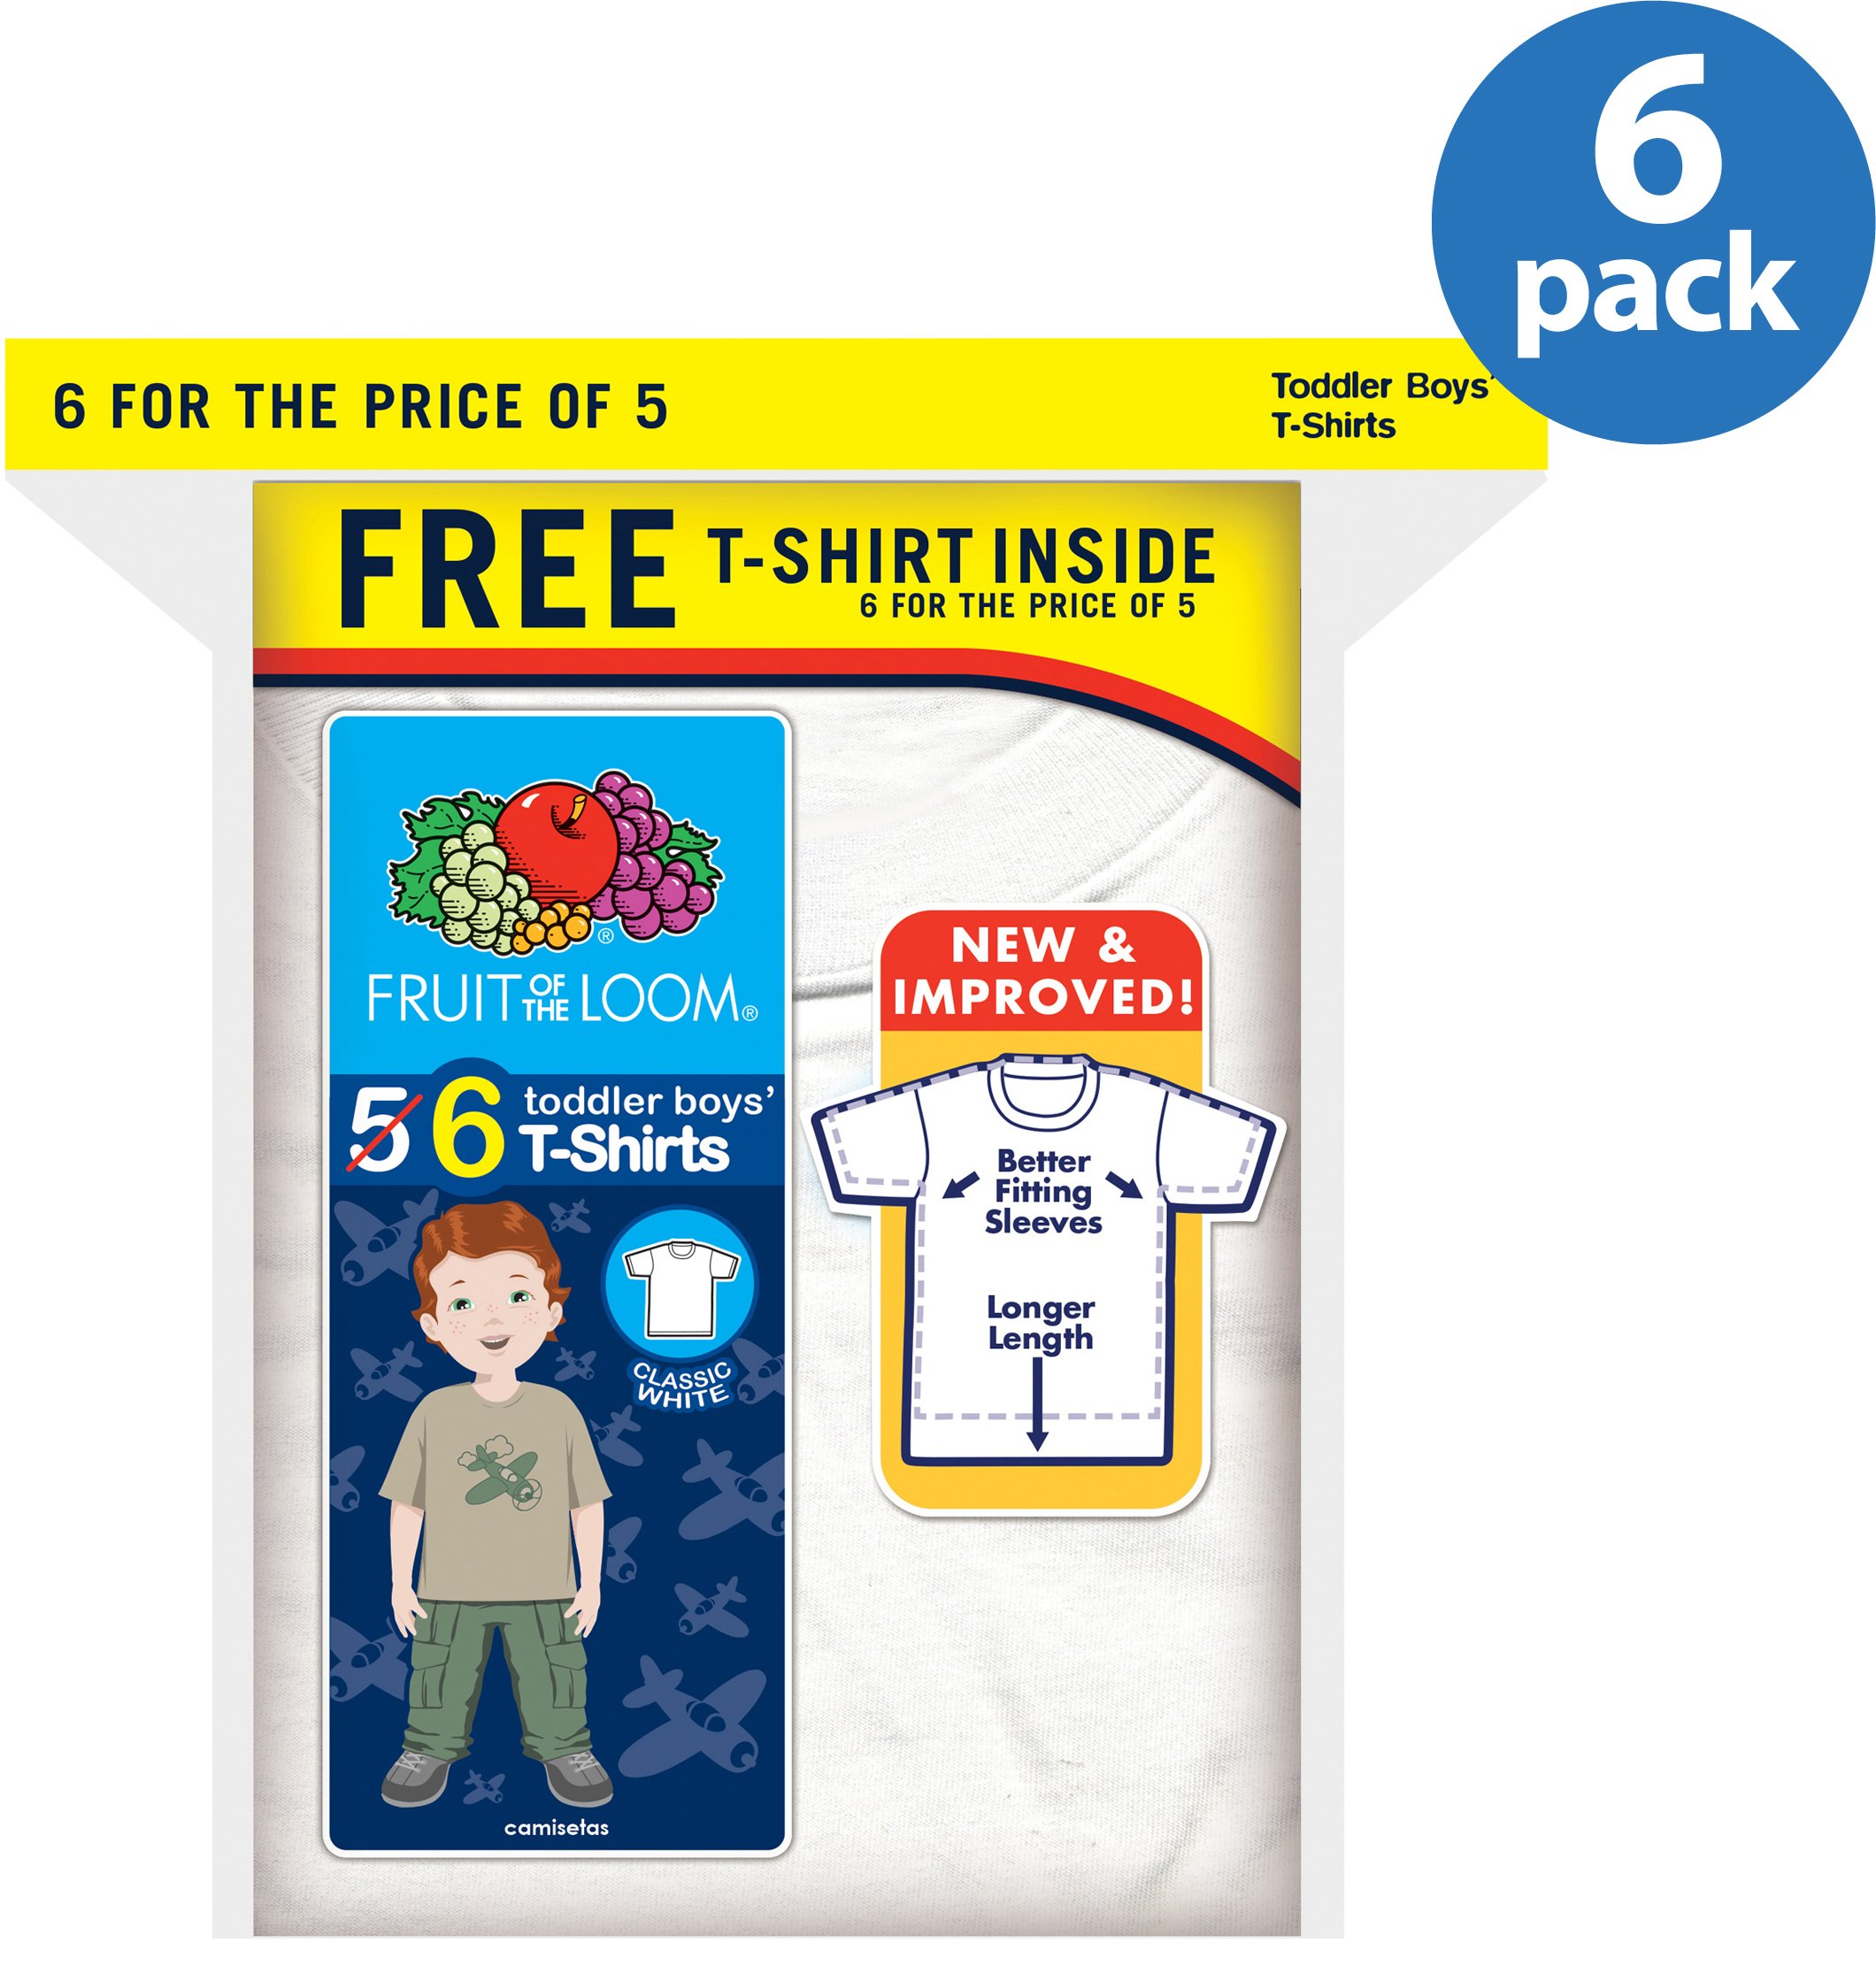 Fruit of the Loom Toddler Boys' Cotton Crew Tees, 5+1 Free, Bonus Pack